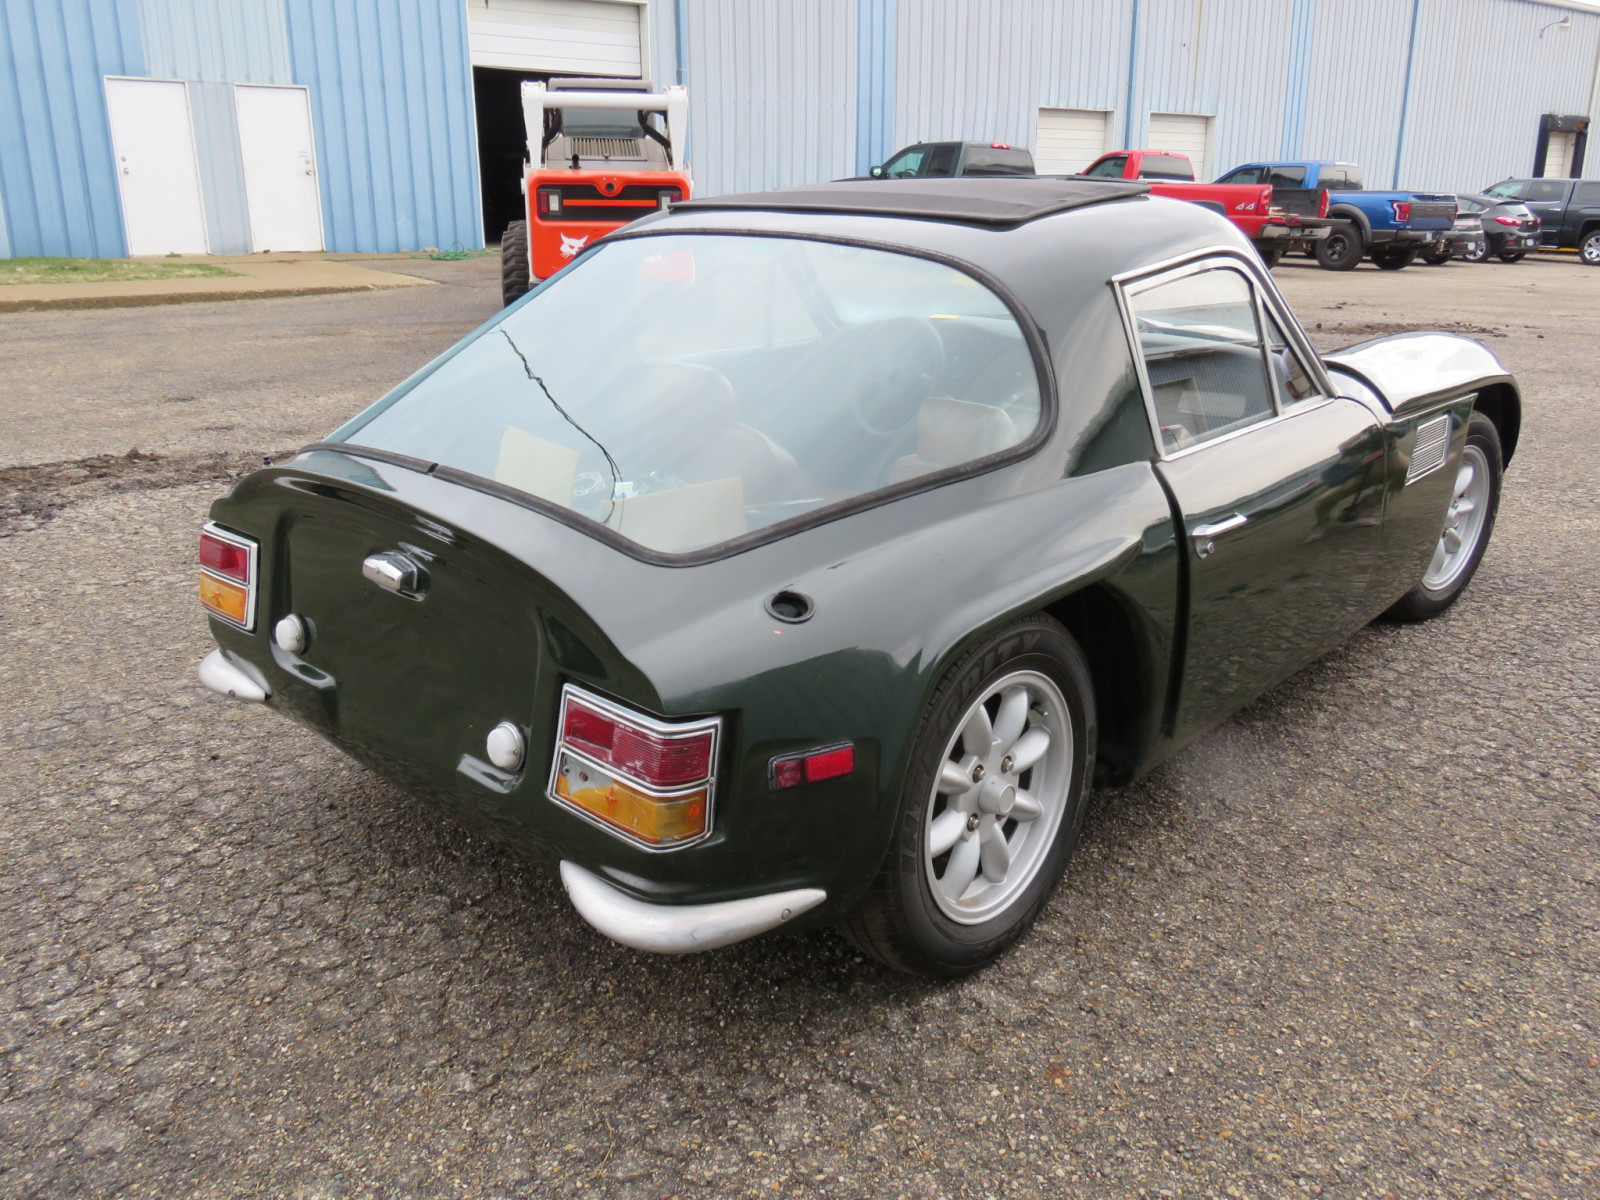 1972 TVR 2500M Coupe - Image 5